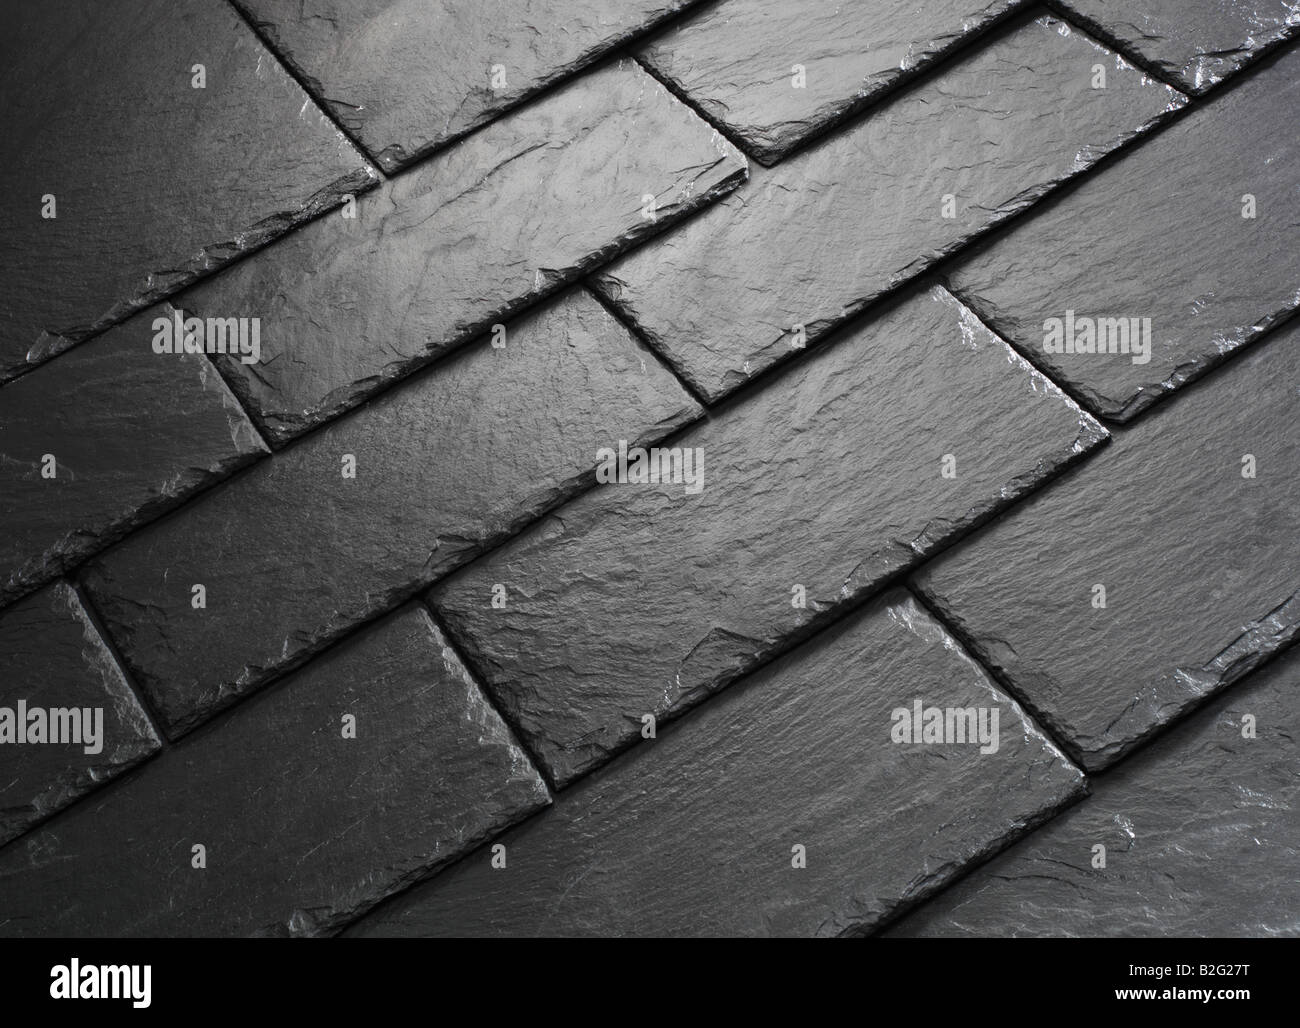 Slate Roof Tiles Stock Photo Royalty Free Image 18792700